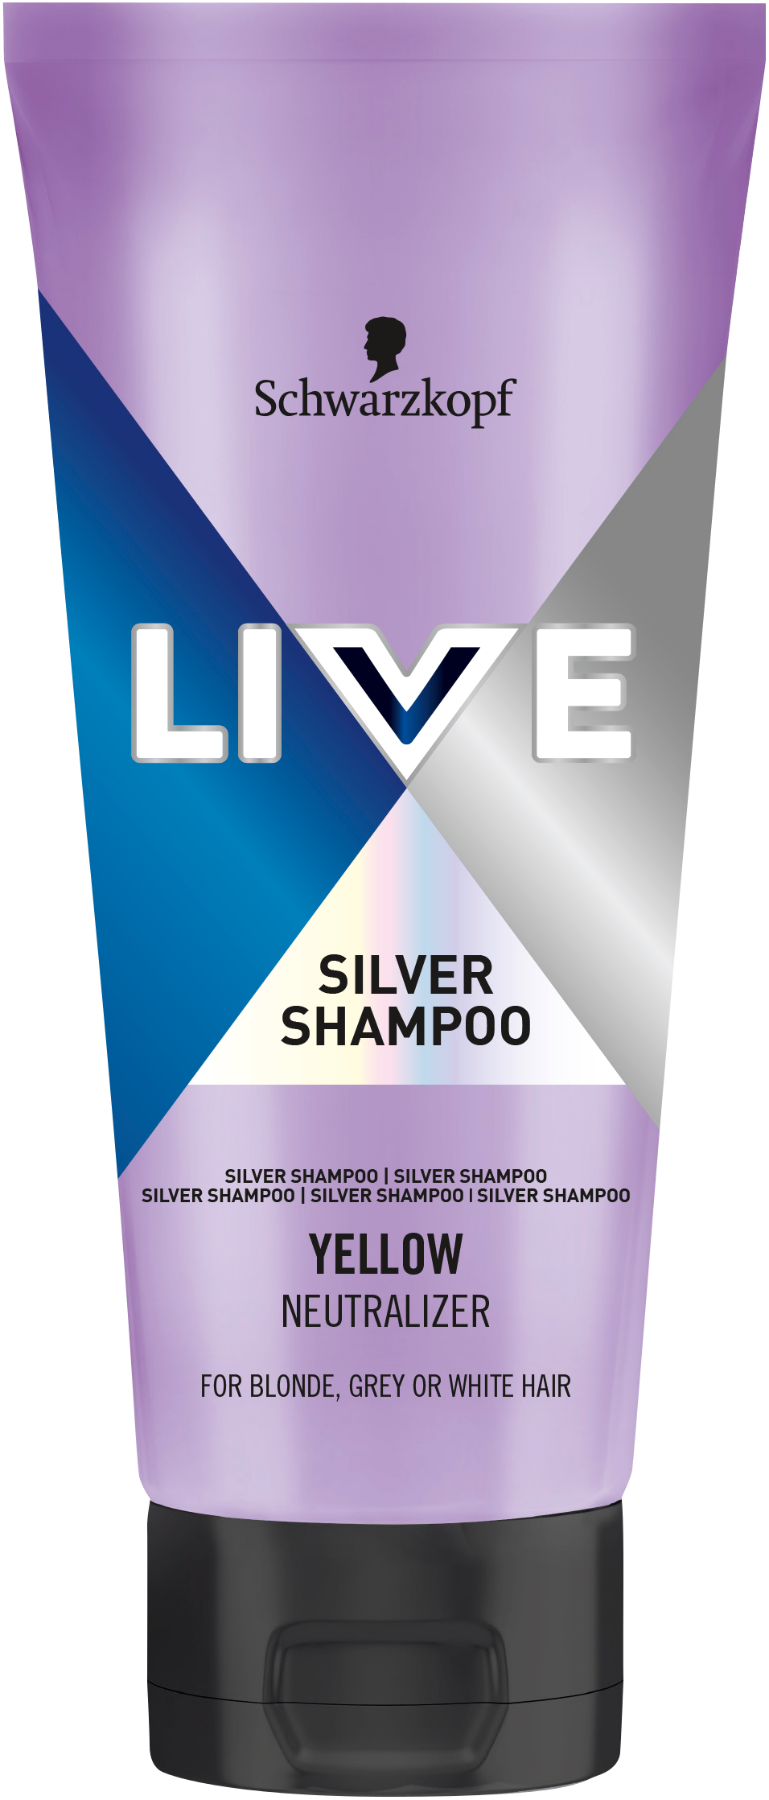 Live Silver Shampoo Yellow Neutralizer AT